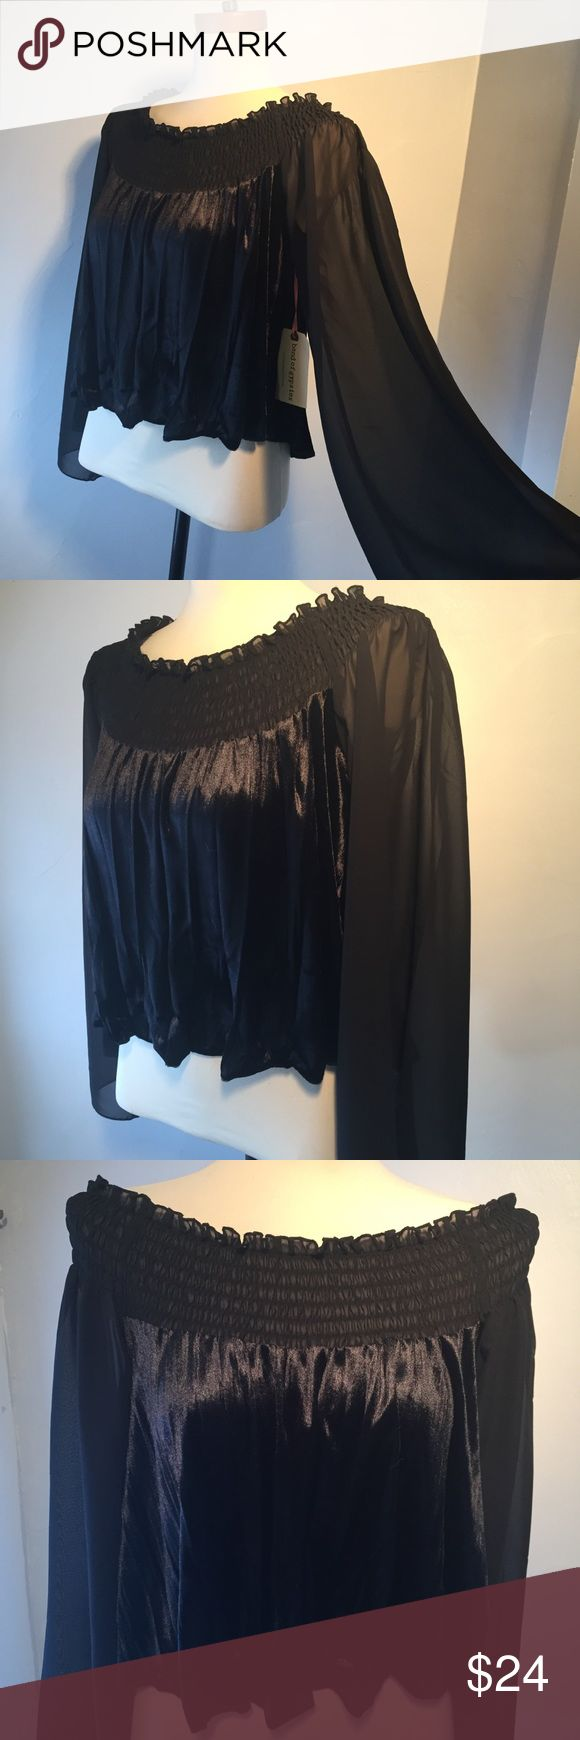 """Band Of Gypsies Black Velvet Top Super cute off the shoulder top...sheer sleeves, black velvet bottom. Cropped length. Brand new with tags. 16"""" from neckline to bottom. ReAsOnaBle offers always considered. Band of Gypsies Tops"""